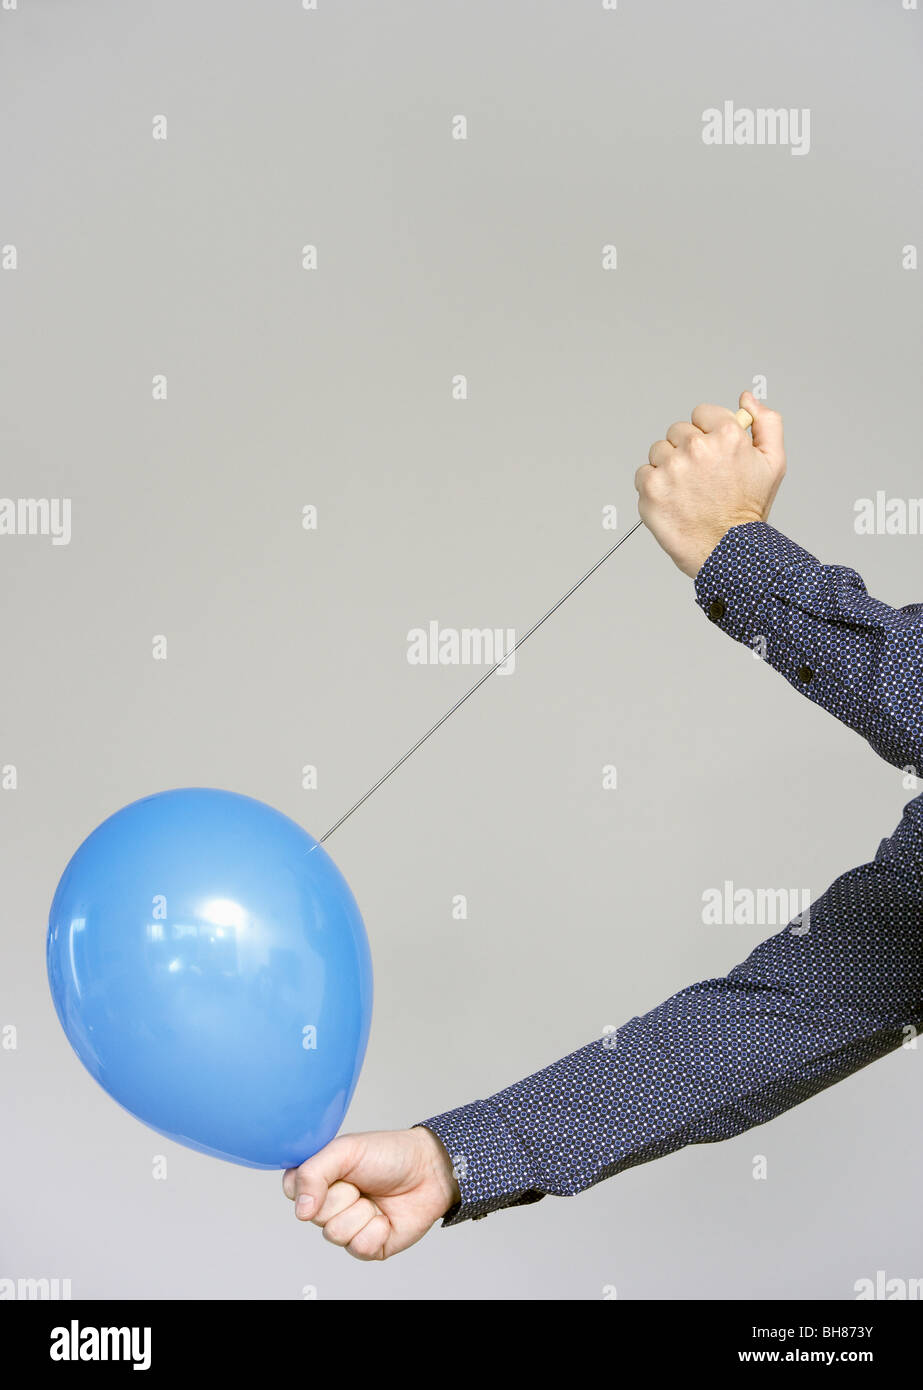 men's hands about to burst a balloon - Stock Image